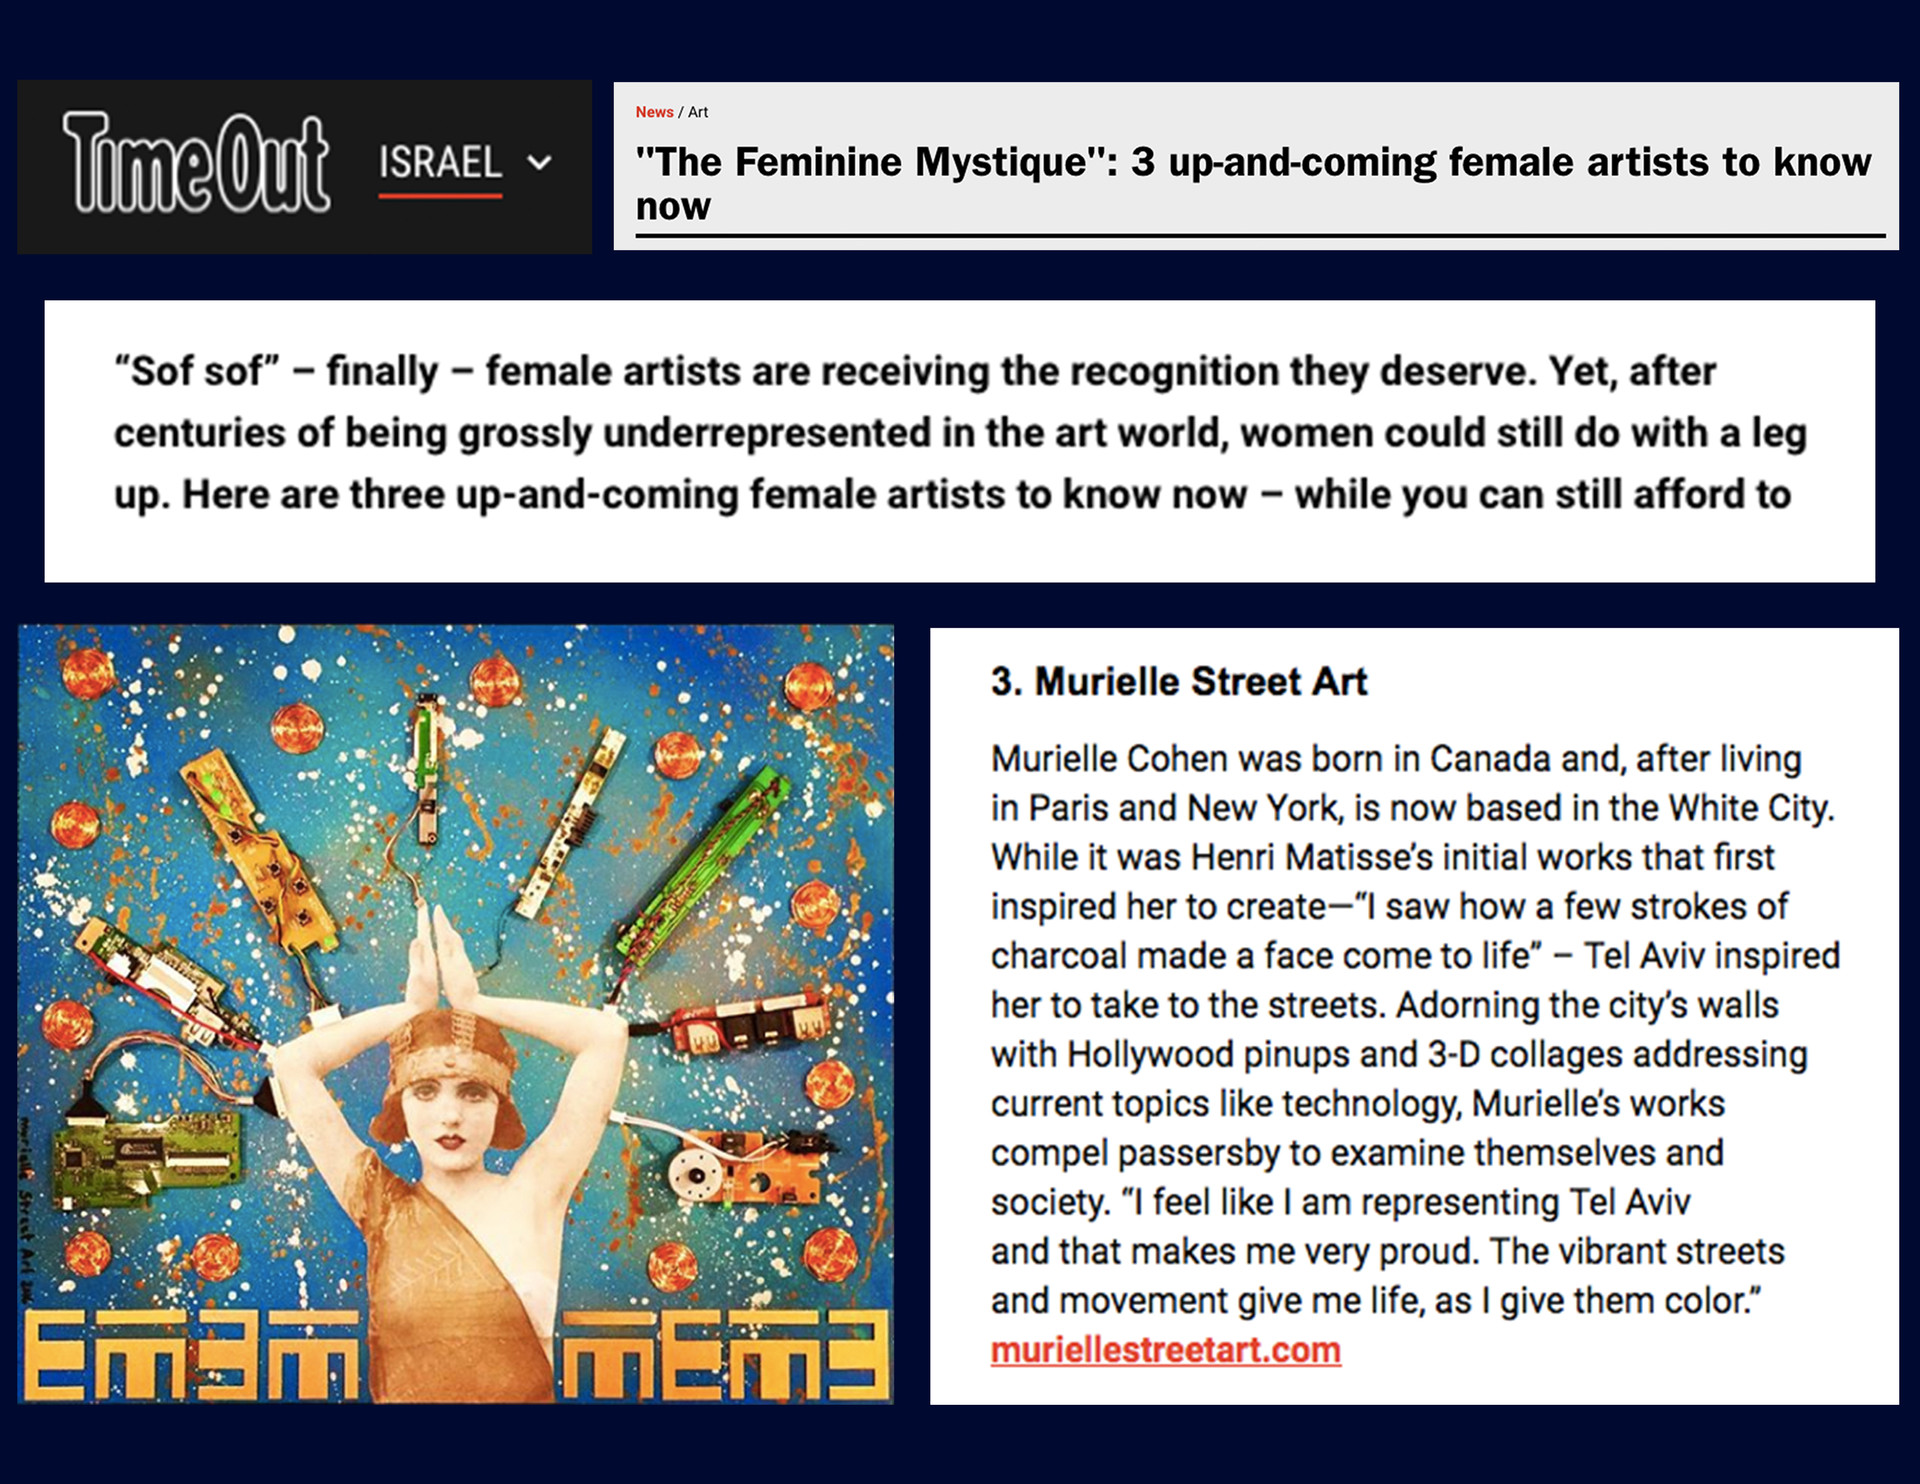 https://www.timeout.com/israel/blog/the-feminine-mystique-3-up-and-coming-female-artists-to-know-now-102617